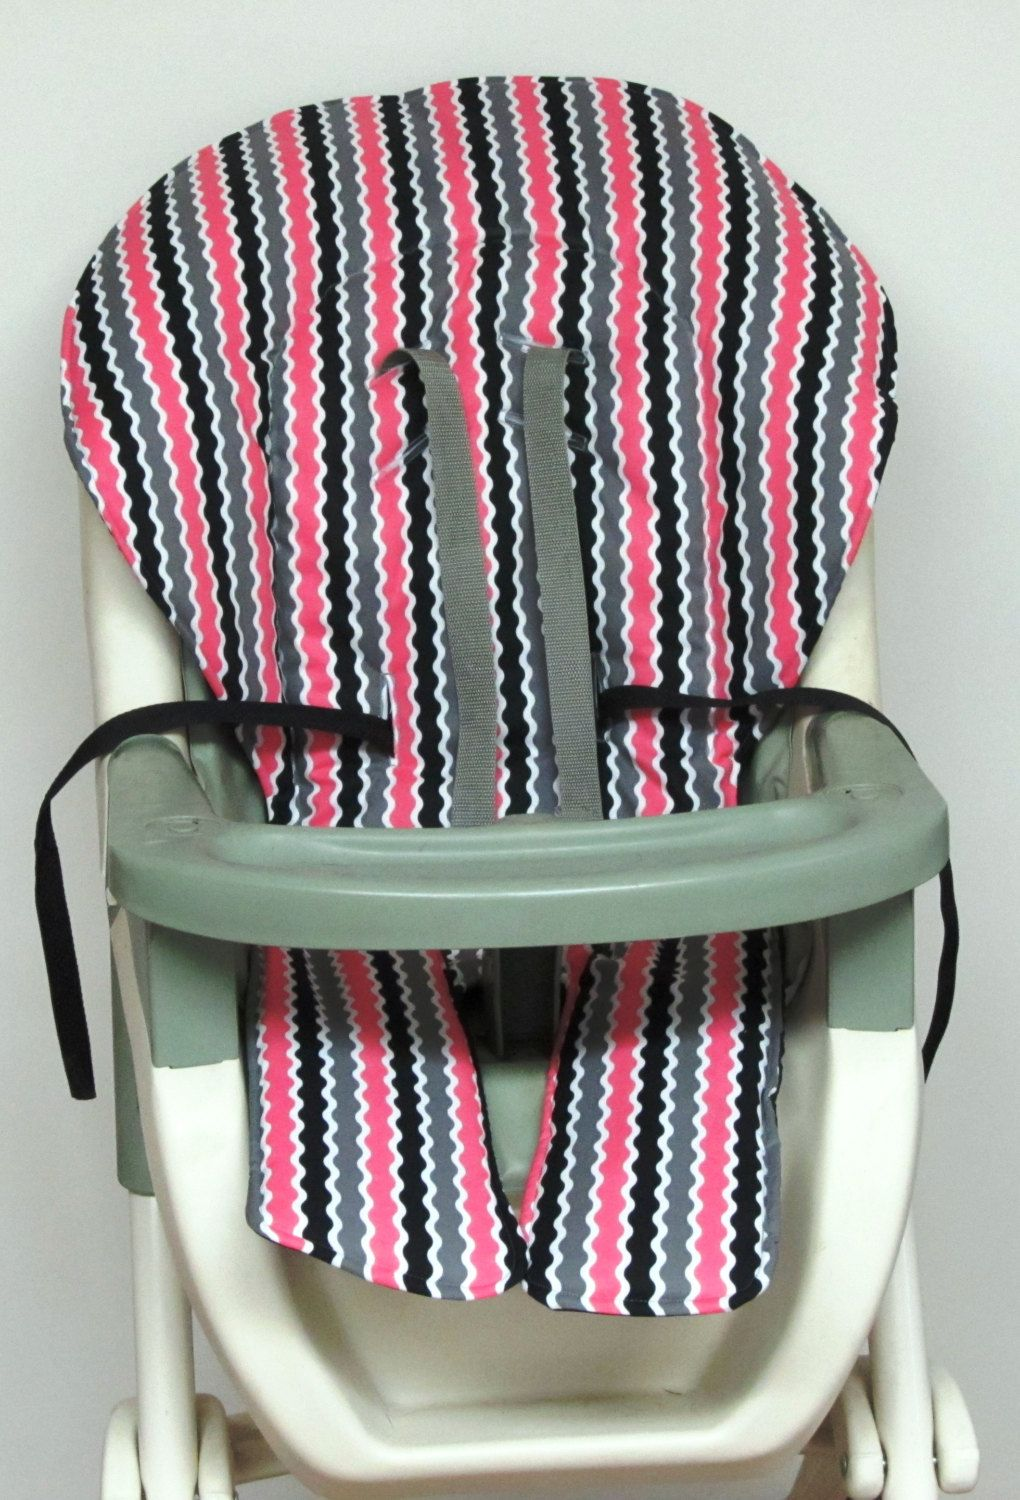 Graco High Chair Cover Kids And Baby Feeding Accessory Pad Replacement Nursery Decor Child Care Ric Rac Print By Sewingsilly On